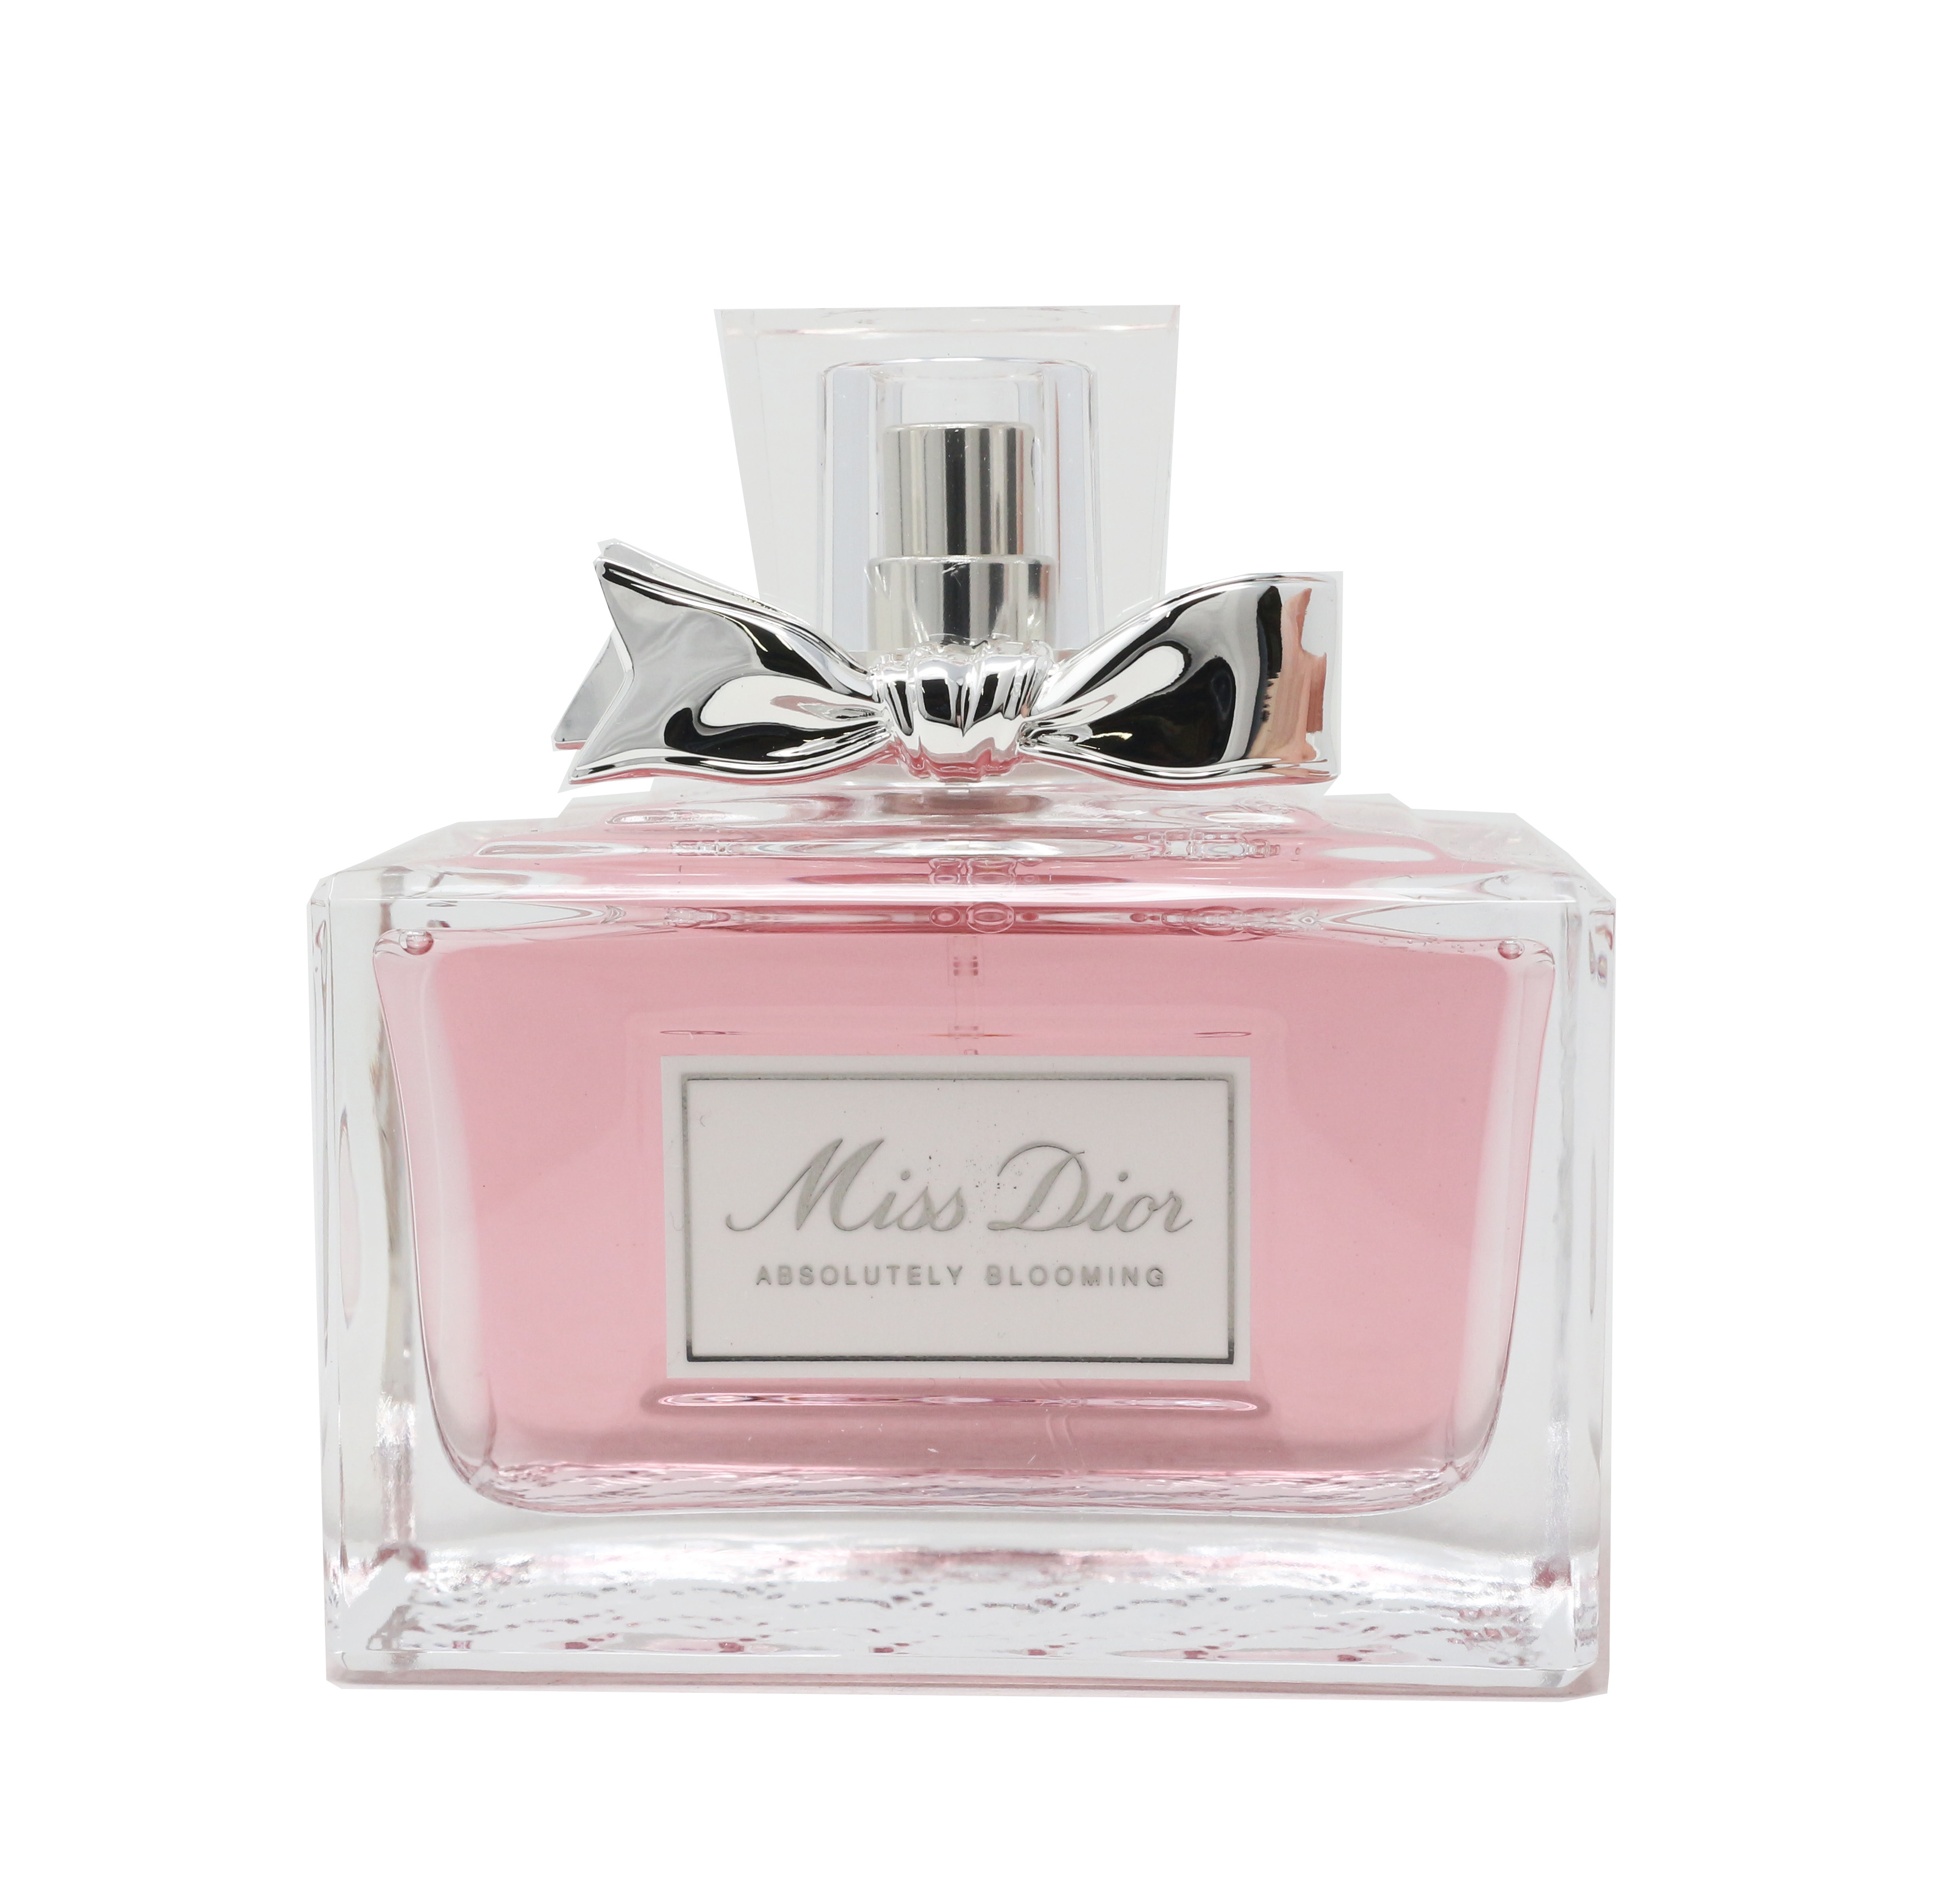 c3137653 Details about Miss Dior Absolutely Blooming by Dior Eau De Parfum 3.4oz New  In White/Brown Box